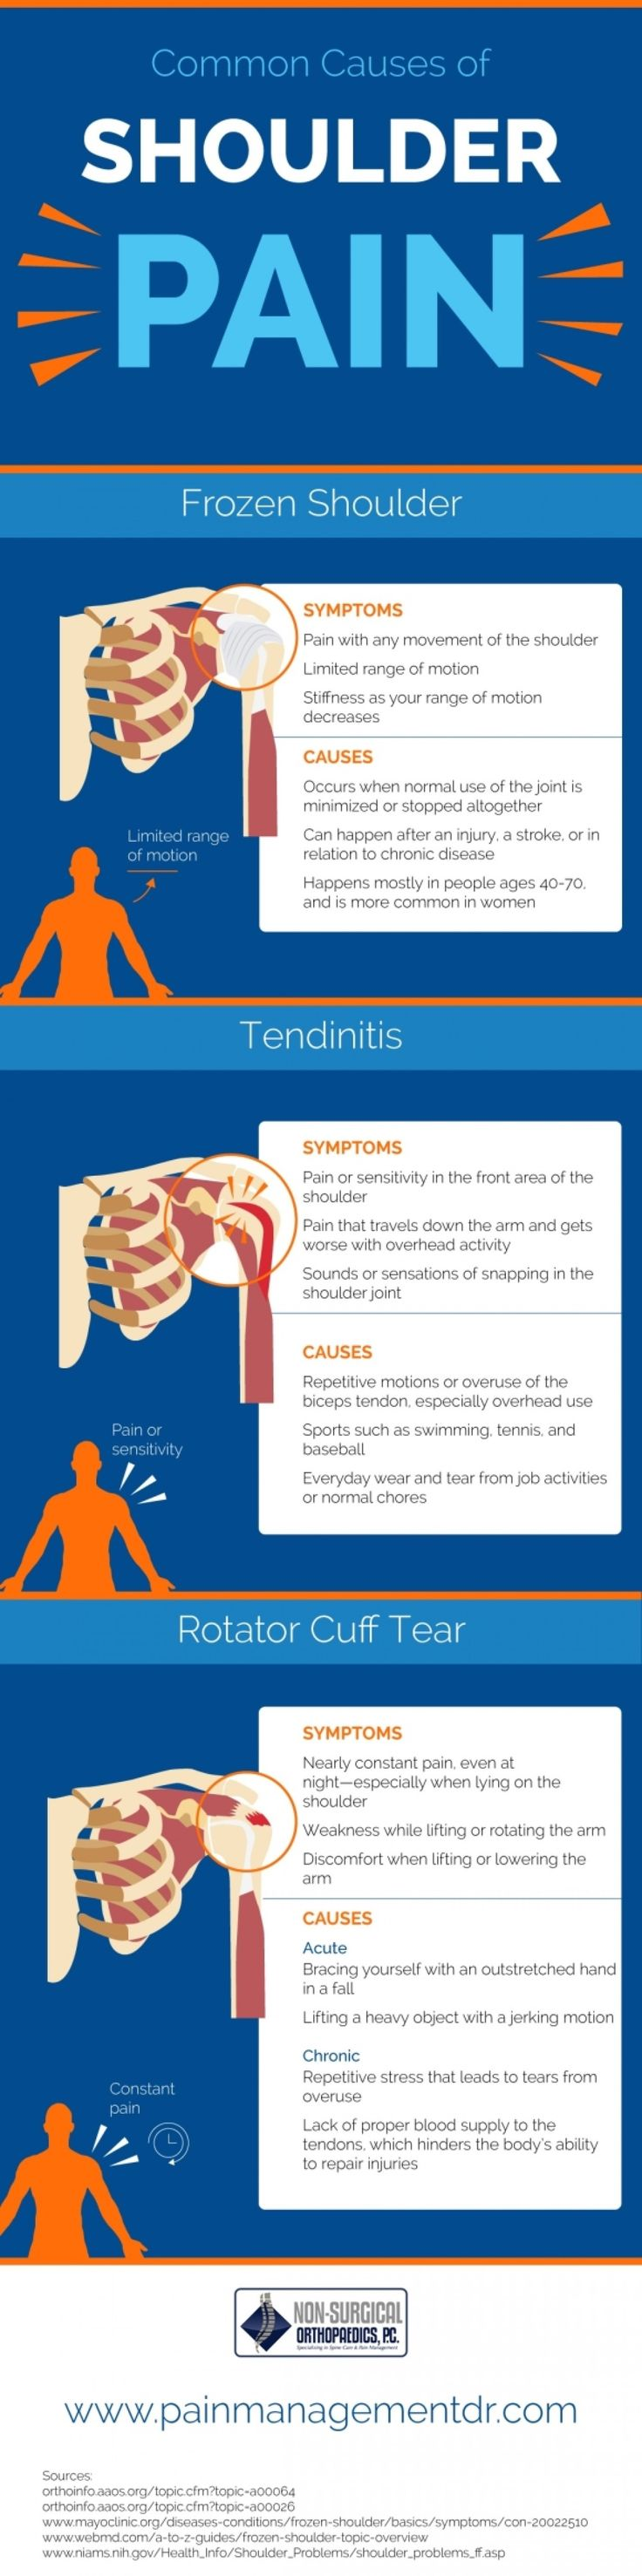 https://visual.ly/community/infographic/health/common-causes-shoulder-pain